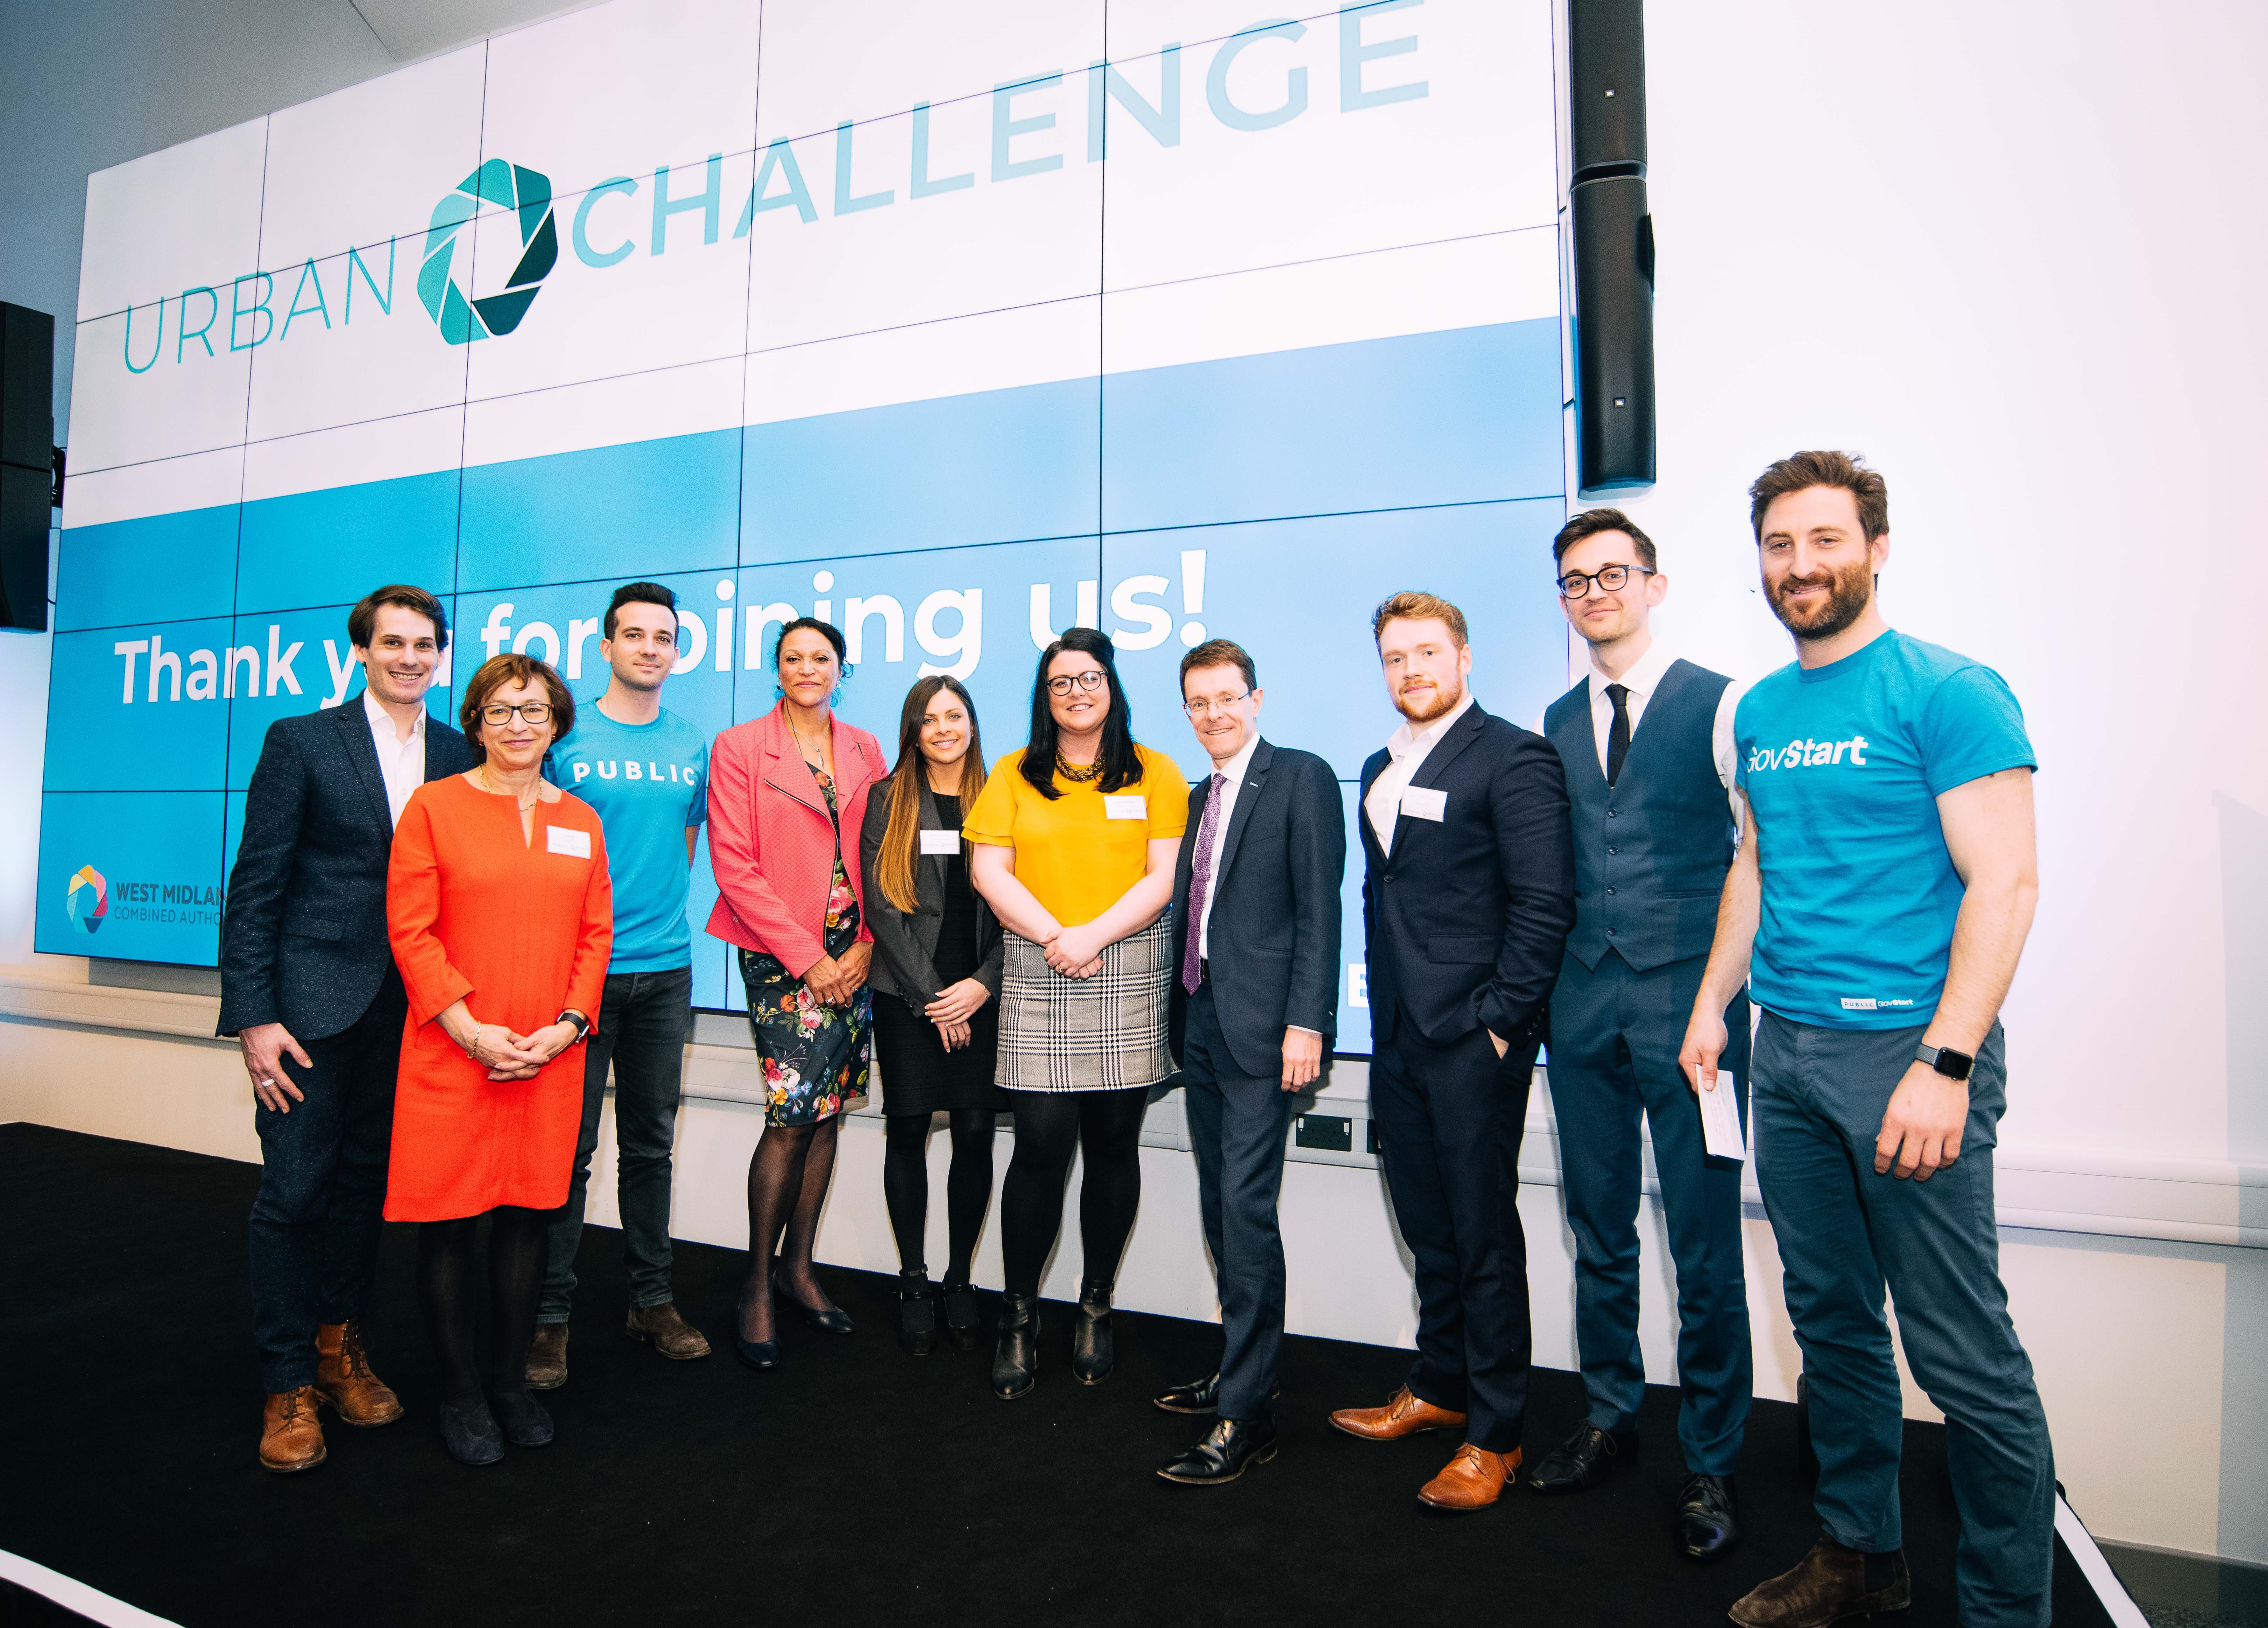 Digital start-ups rise to the challenge